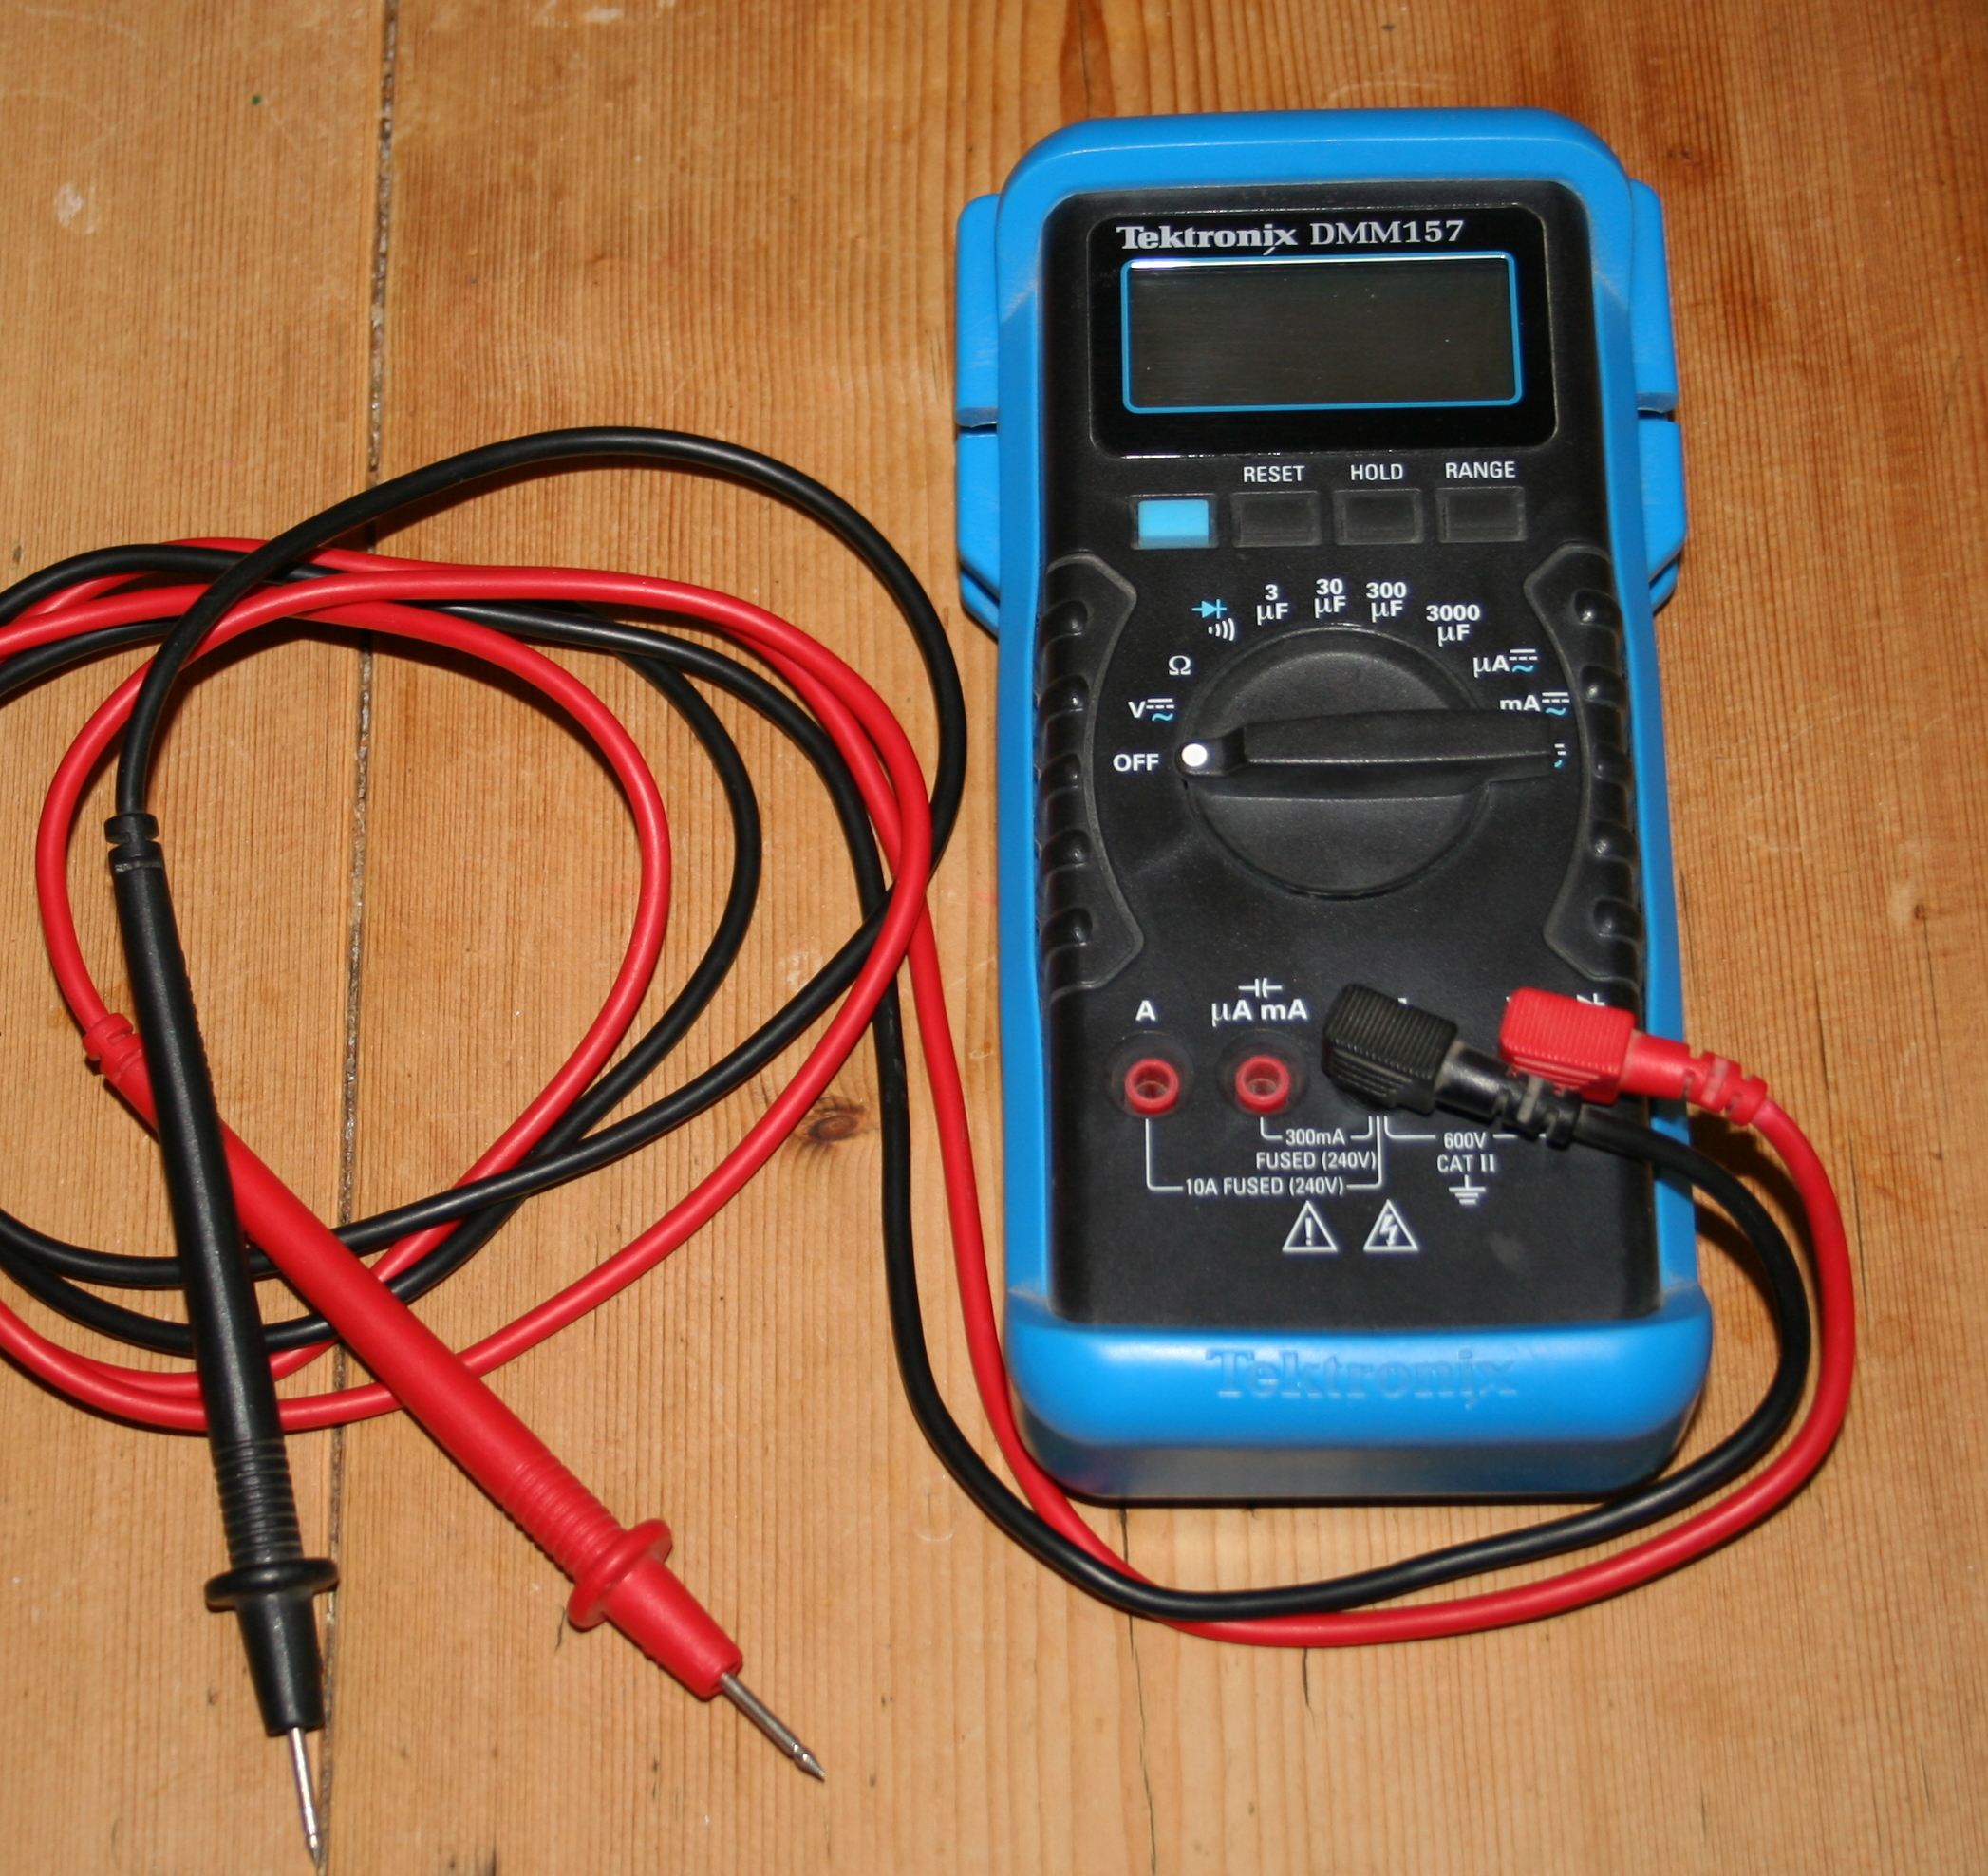 New Dmm Vs High End Older Ones Page 1 How To Use A Multimeter On House Wiring Https Uploadwikimediaorg Wikipedia Commons 3 3f Tektronix Dmm157